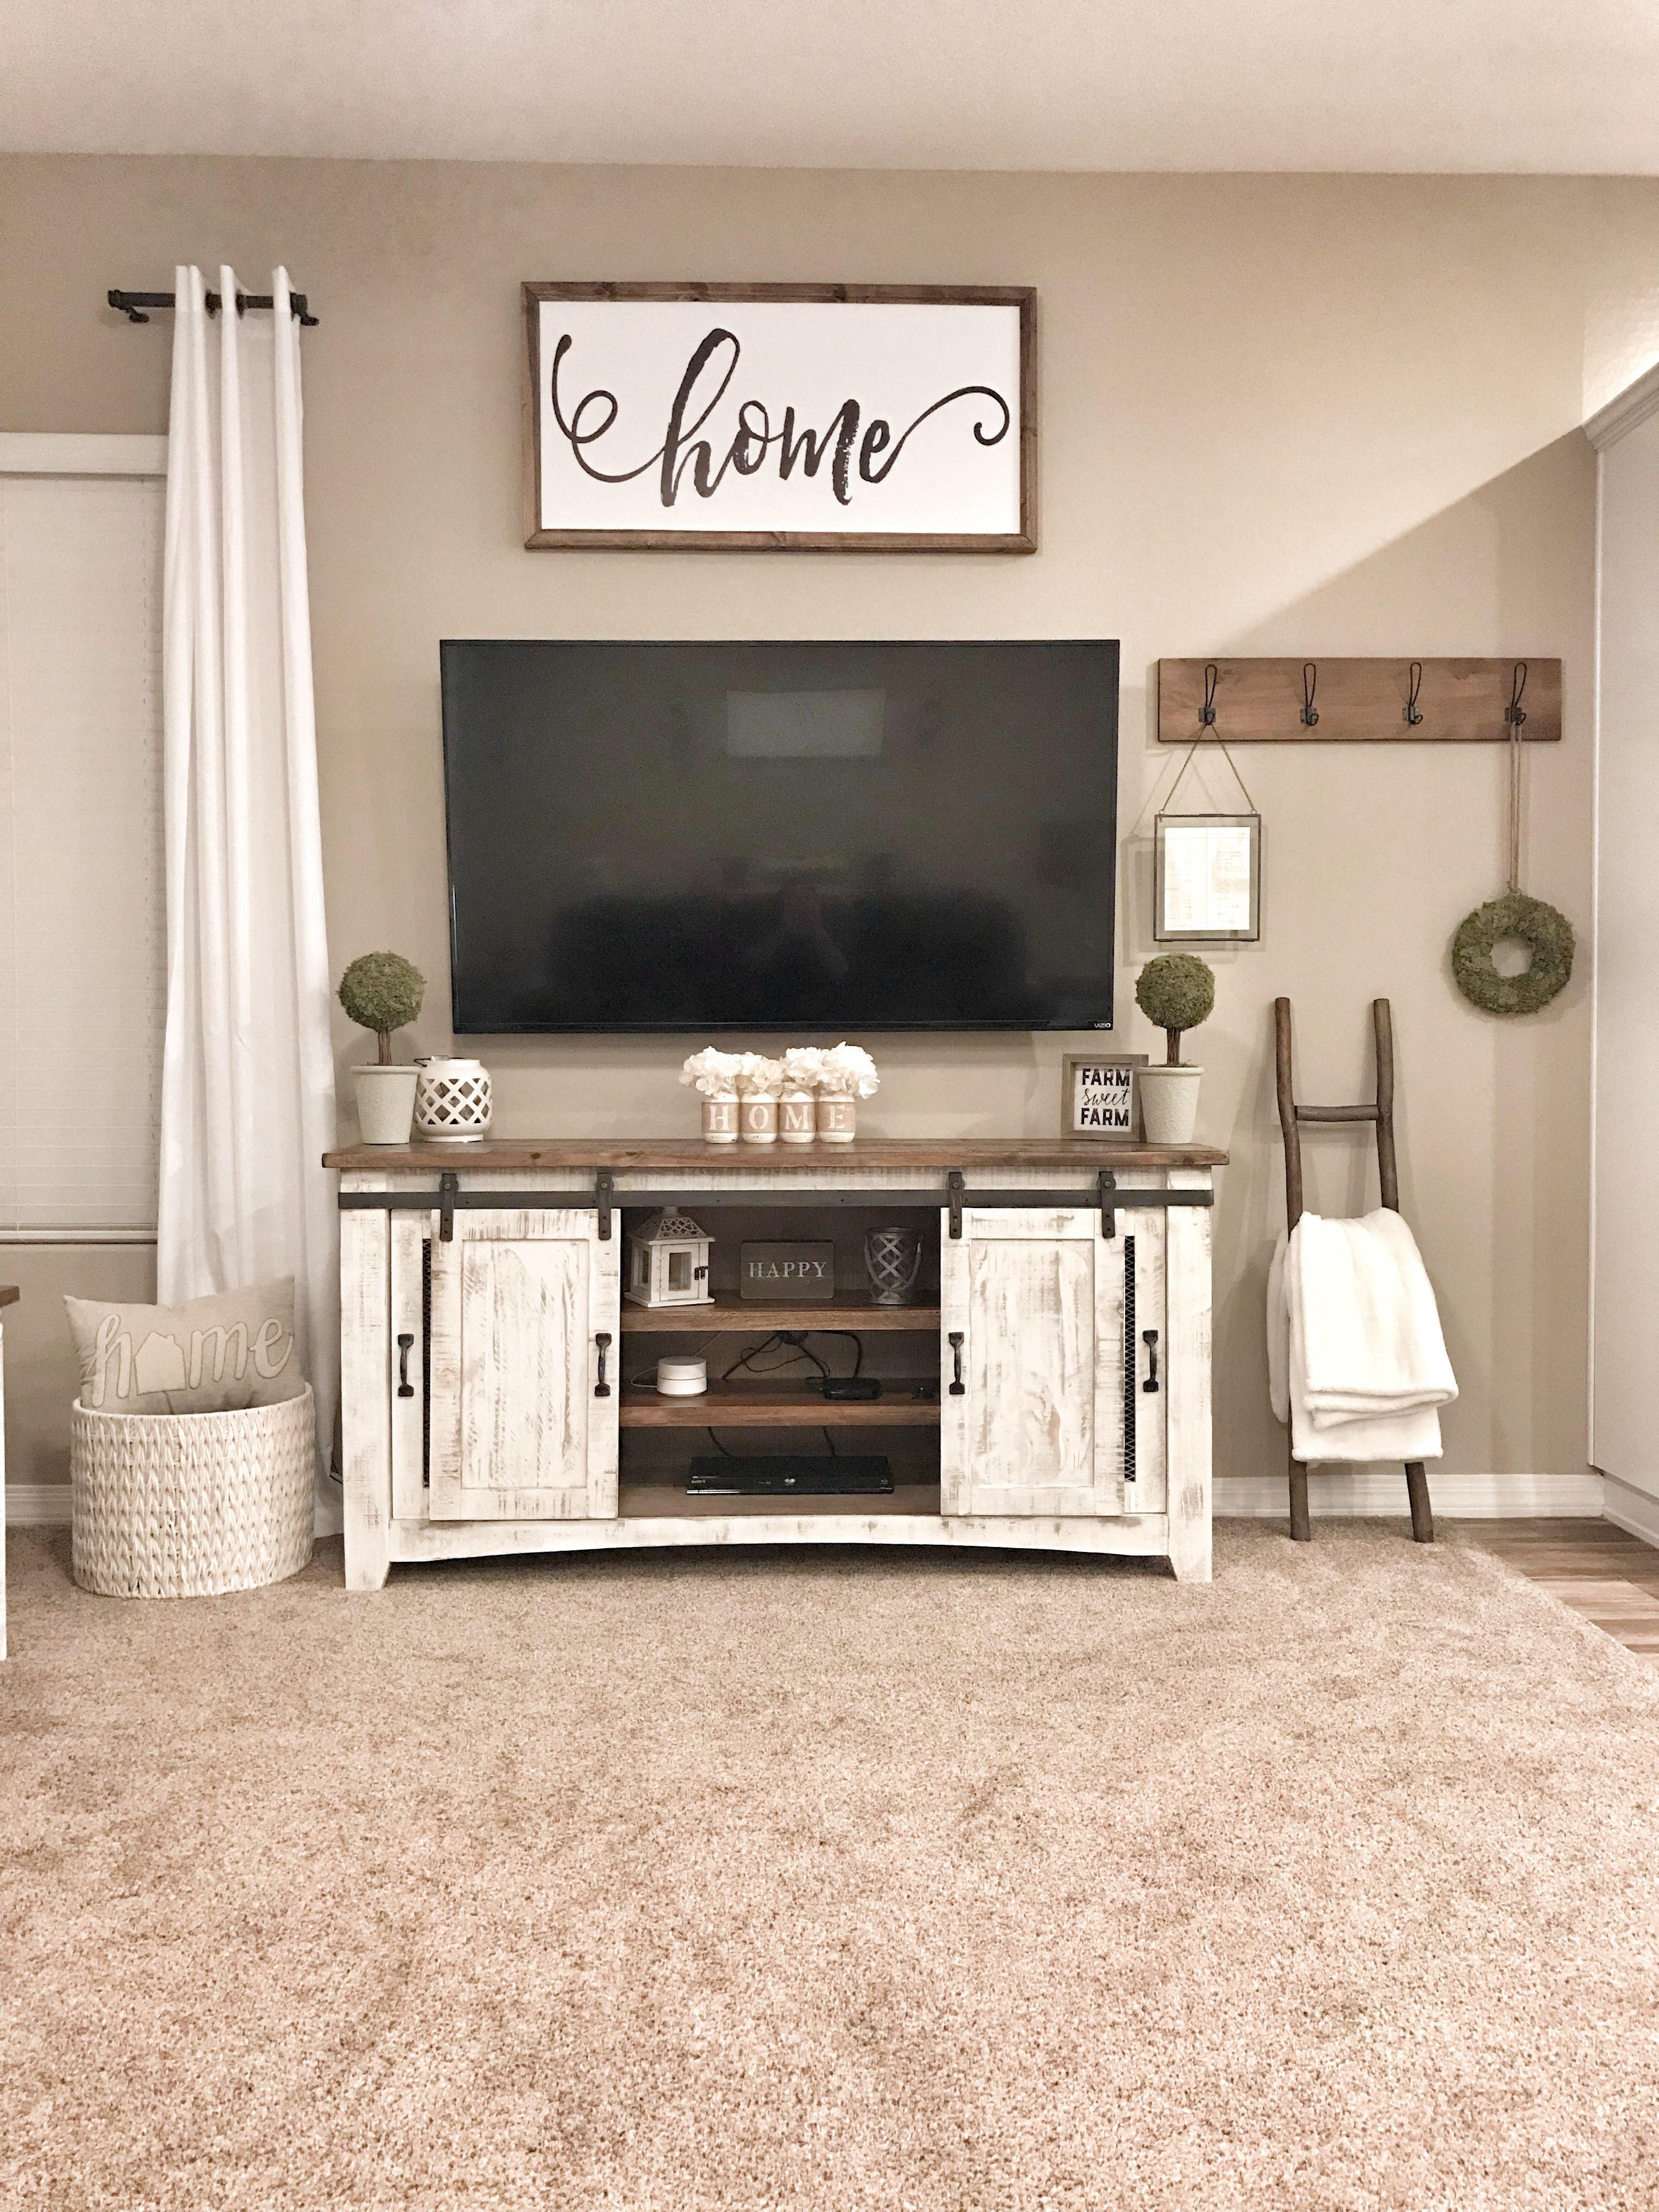 Farmhouse Tv Stand Decor Farmhouse Interior Modern Farmhouse Farmhouse Style Farmhouse Tv Stand